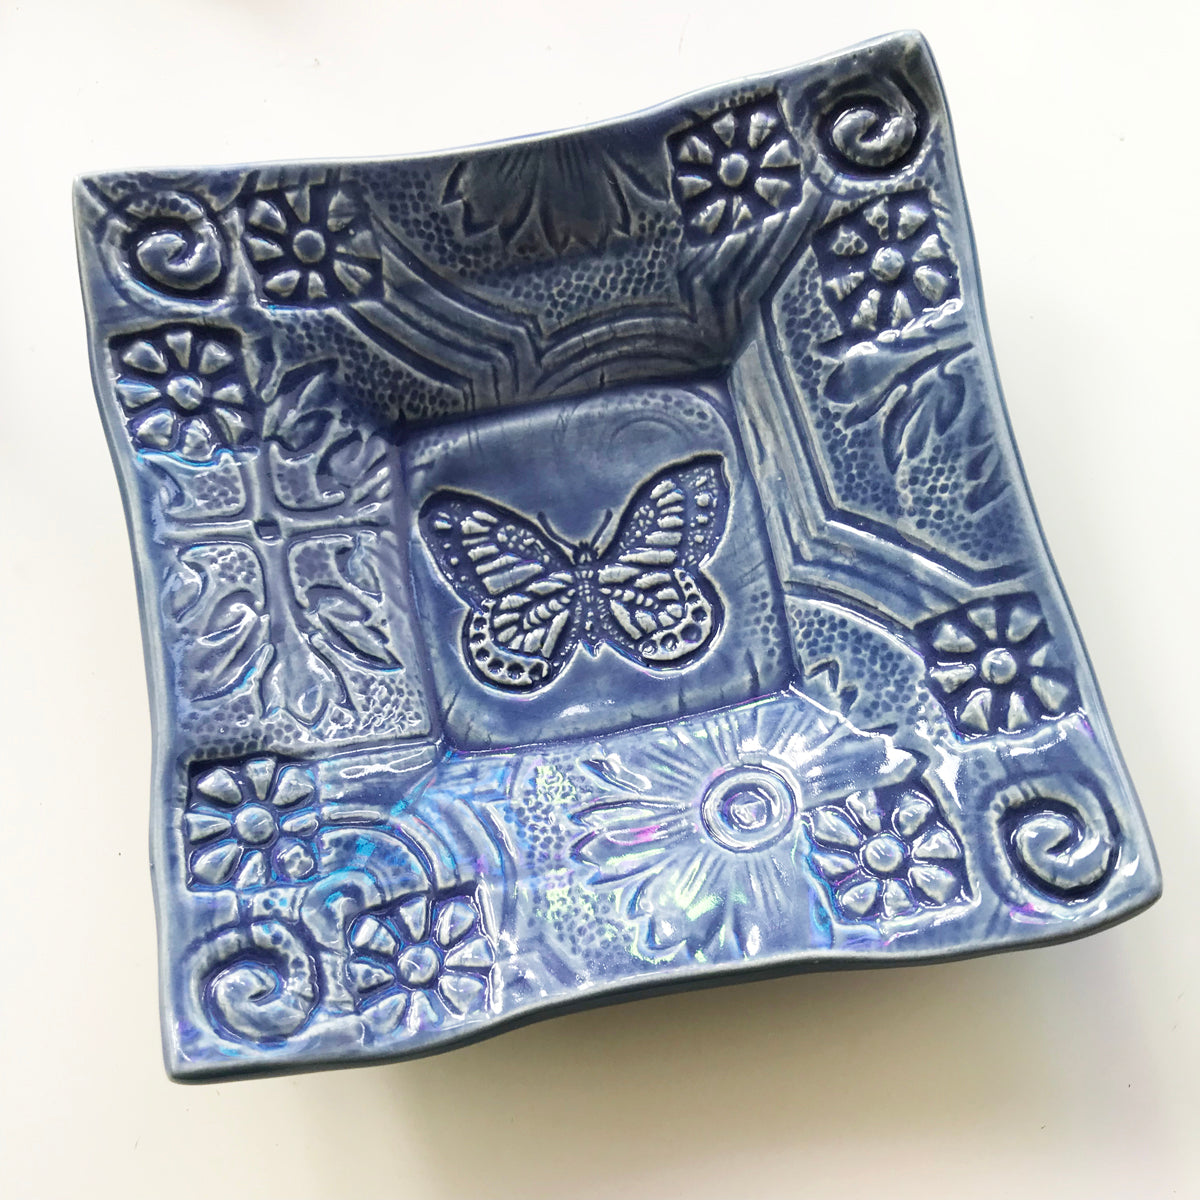 Butterfly design pottery dish handmade by Lorraine Oerth.